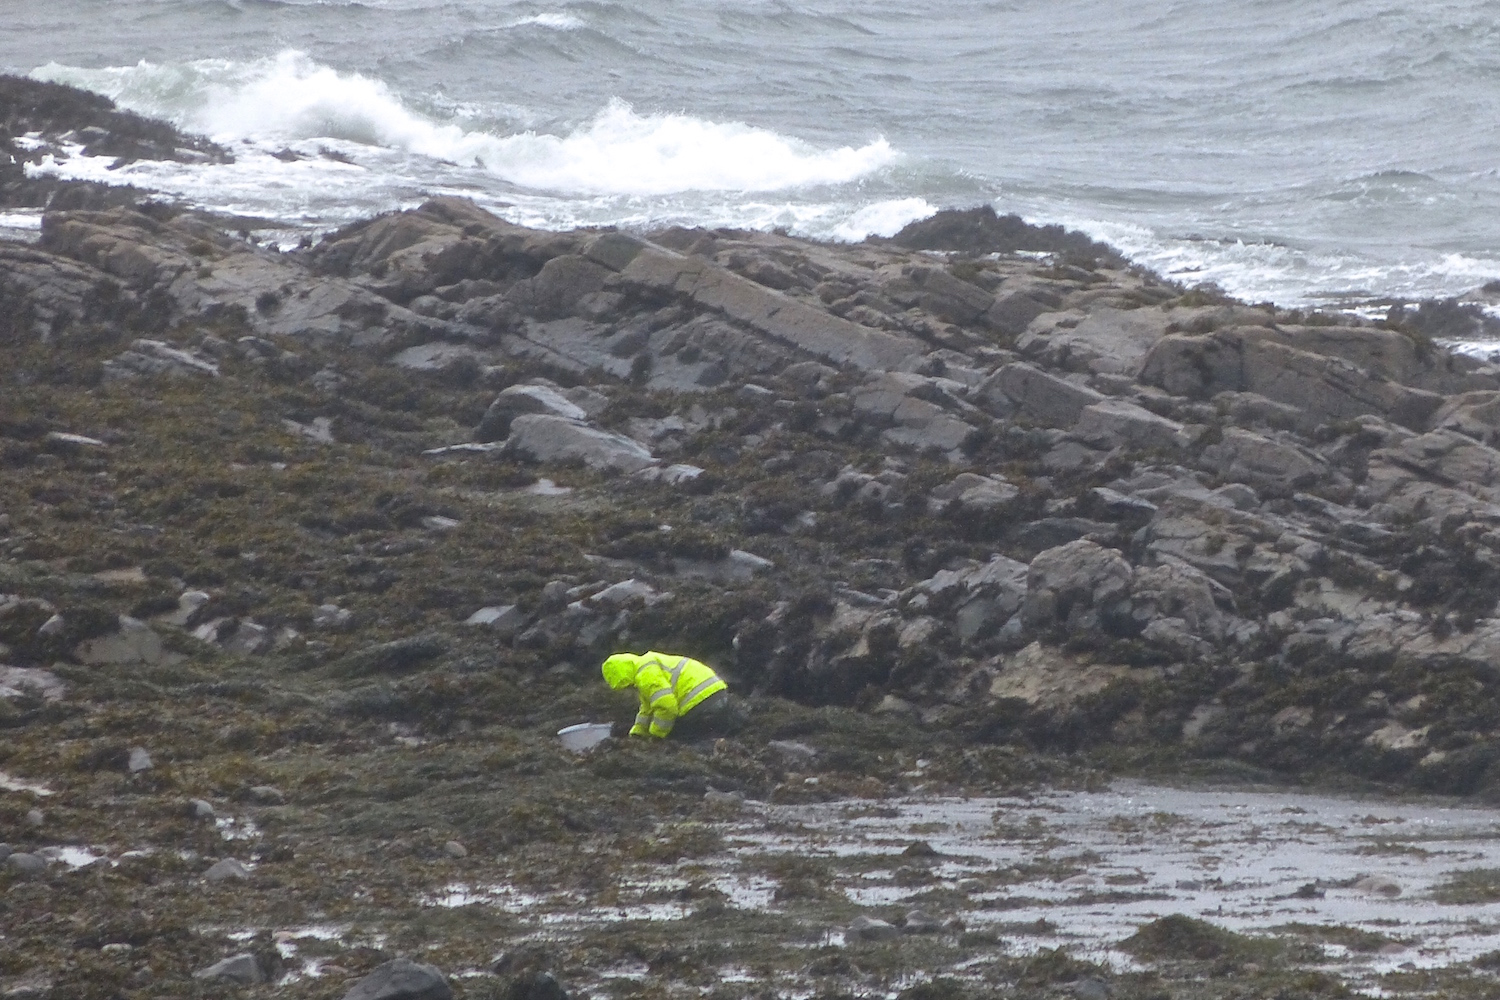 A crofter collects whelks amongst the seaweed along the shoreline.